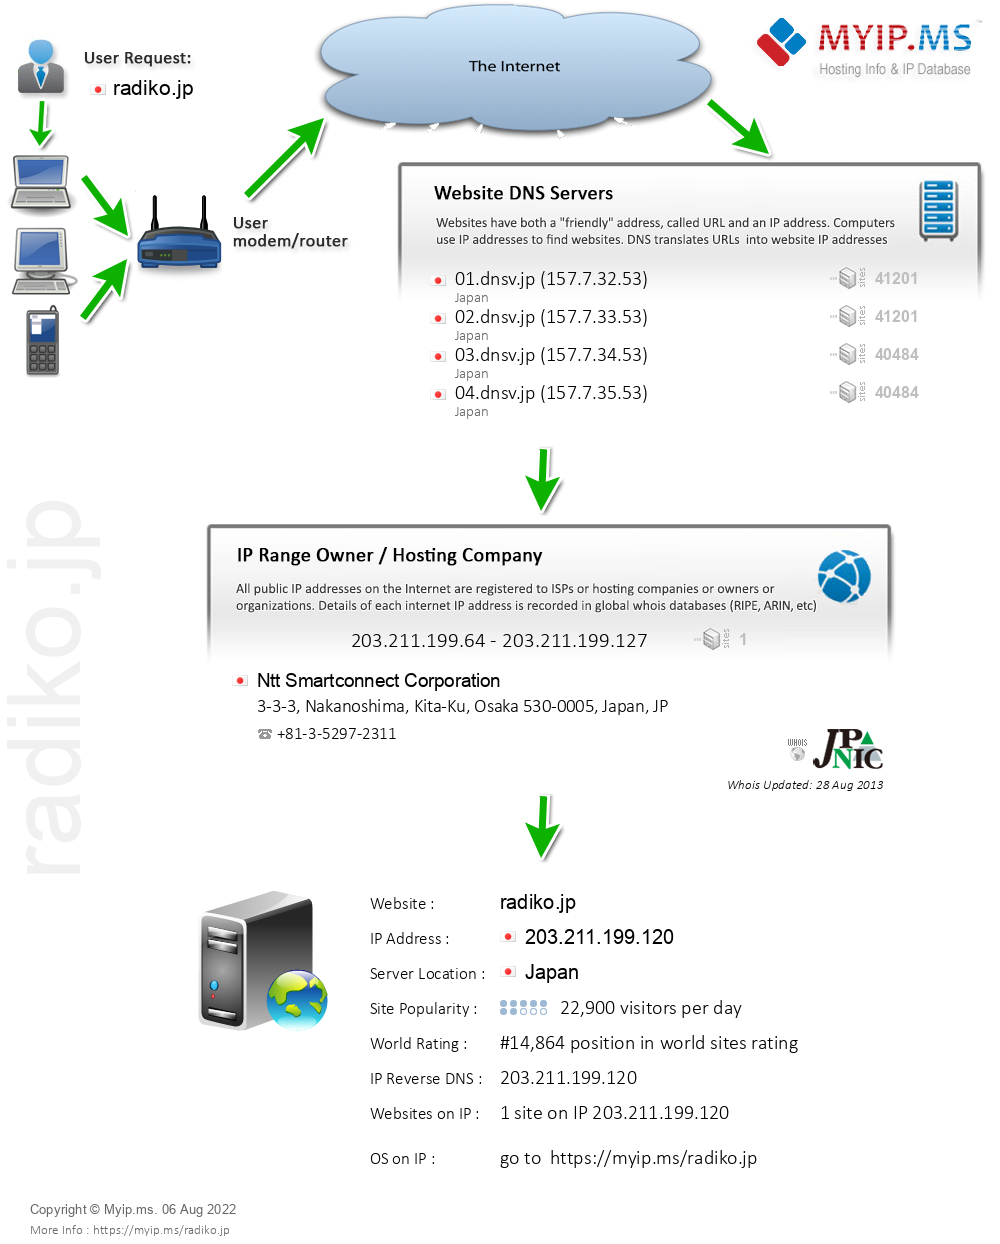 Radiko.jp - Website Hosting Visual IP Diagram